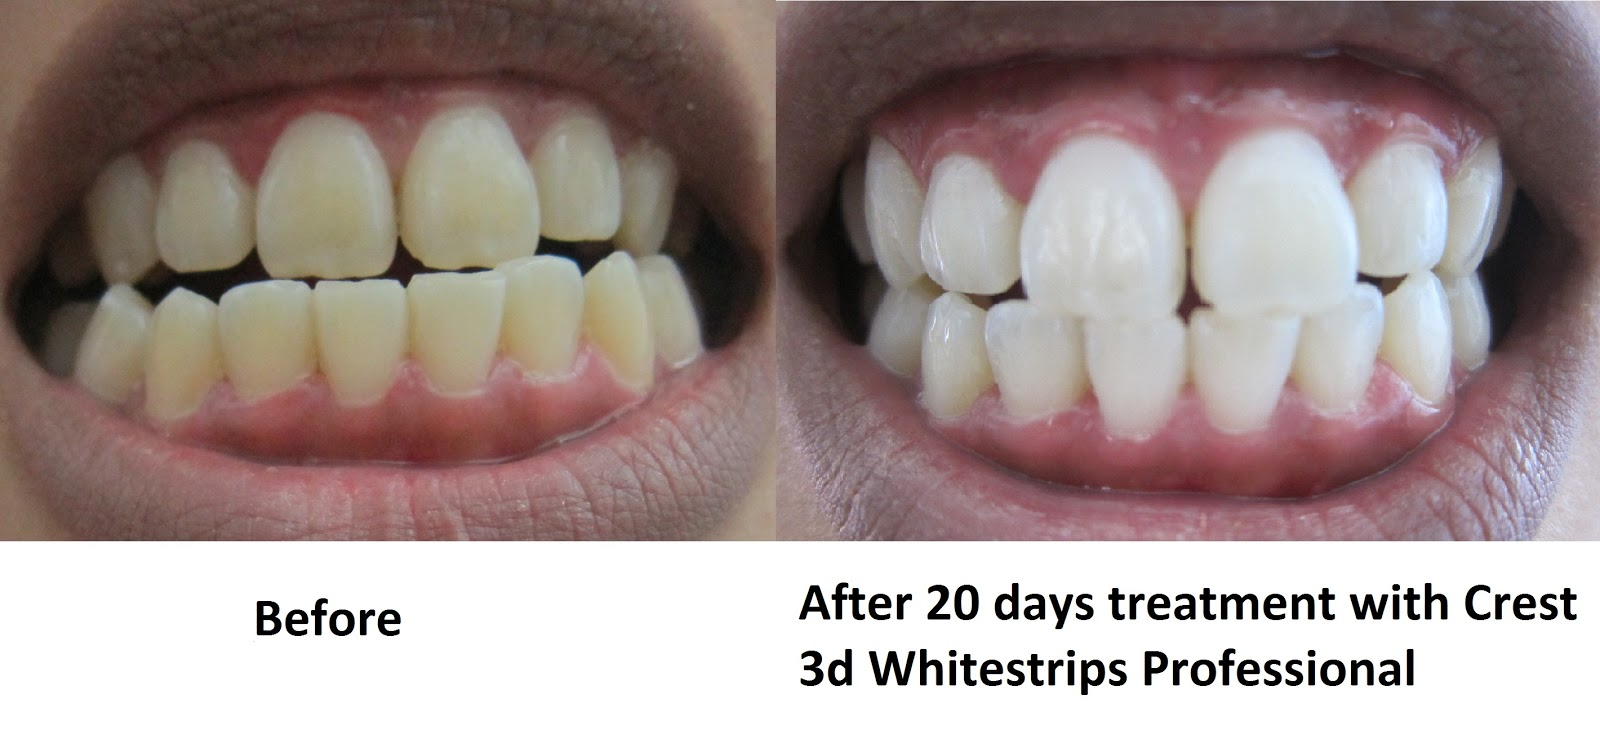 Crest 3D White Malaysia: Crest 3D White Professional Effects